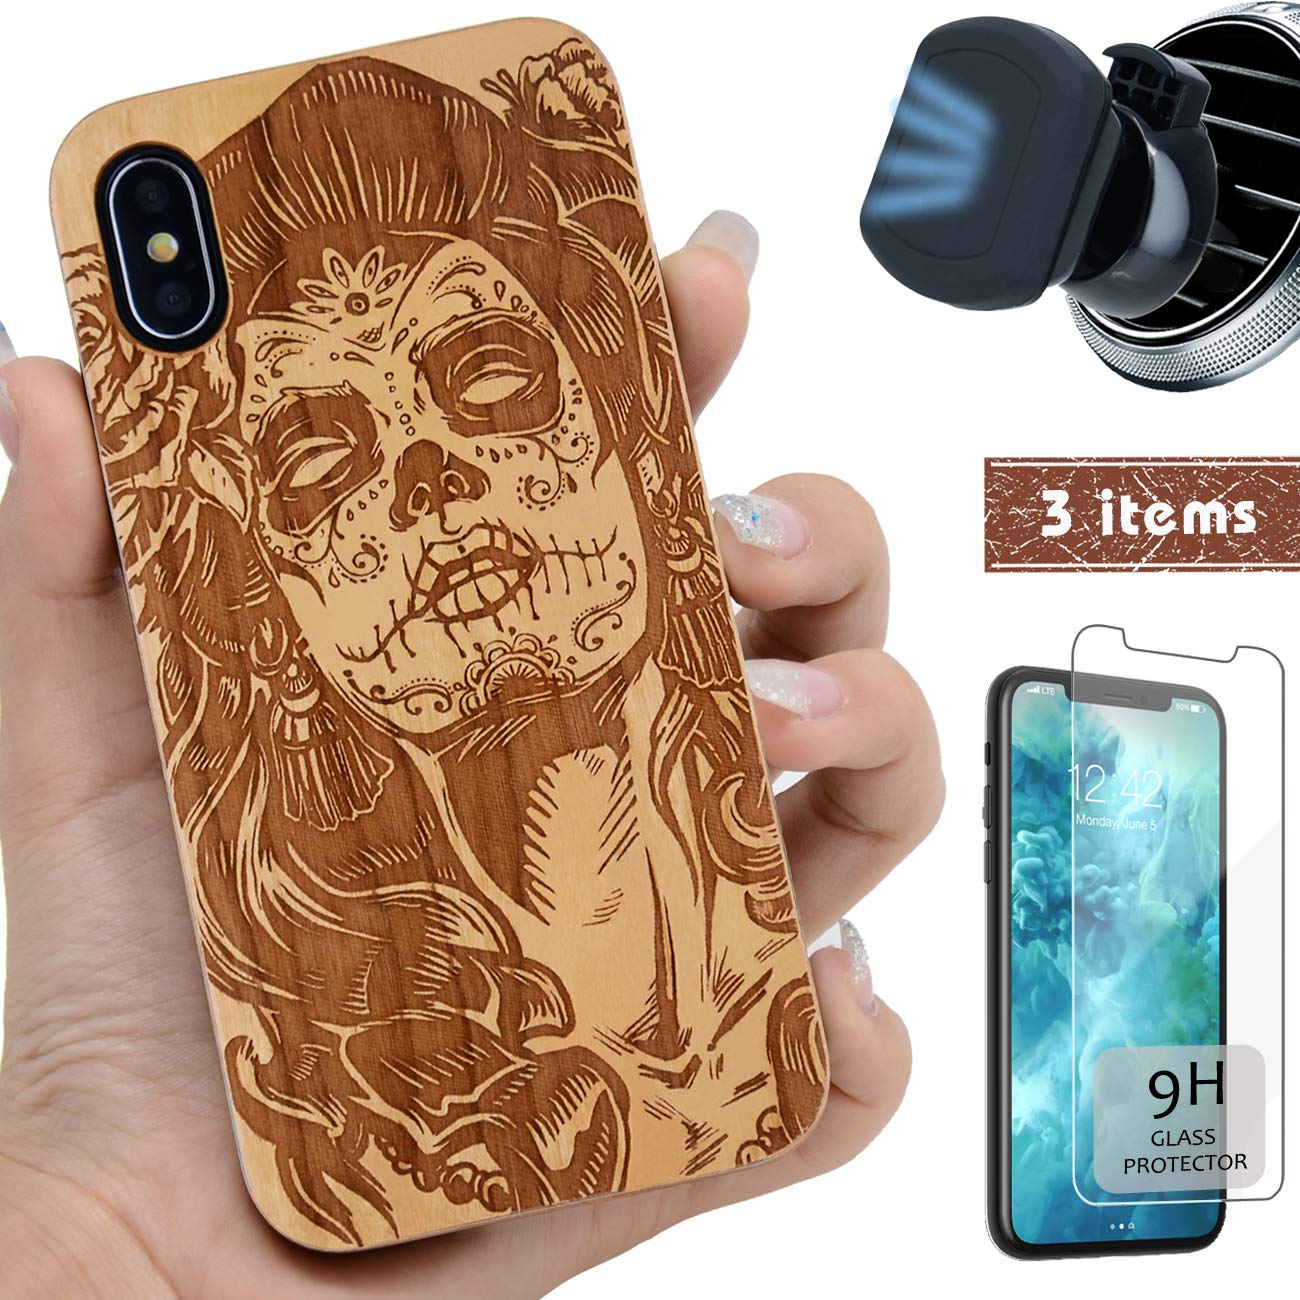 iProductsUS Wood Phone Case Compatible with iPhone X/Xs,Magnetic Mount and Screen Protector-Engraved Cool Skull Girl,Compatible Wireless Charger,Built-in Metal Plate,TPU Rubber Protective Cover(5.8'')